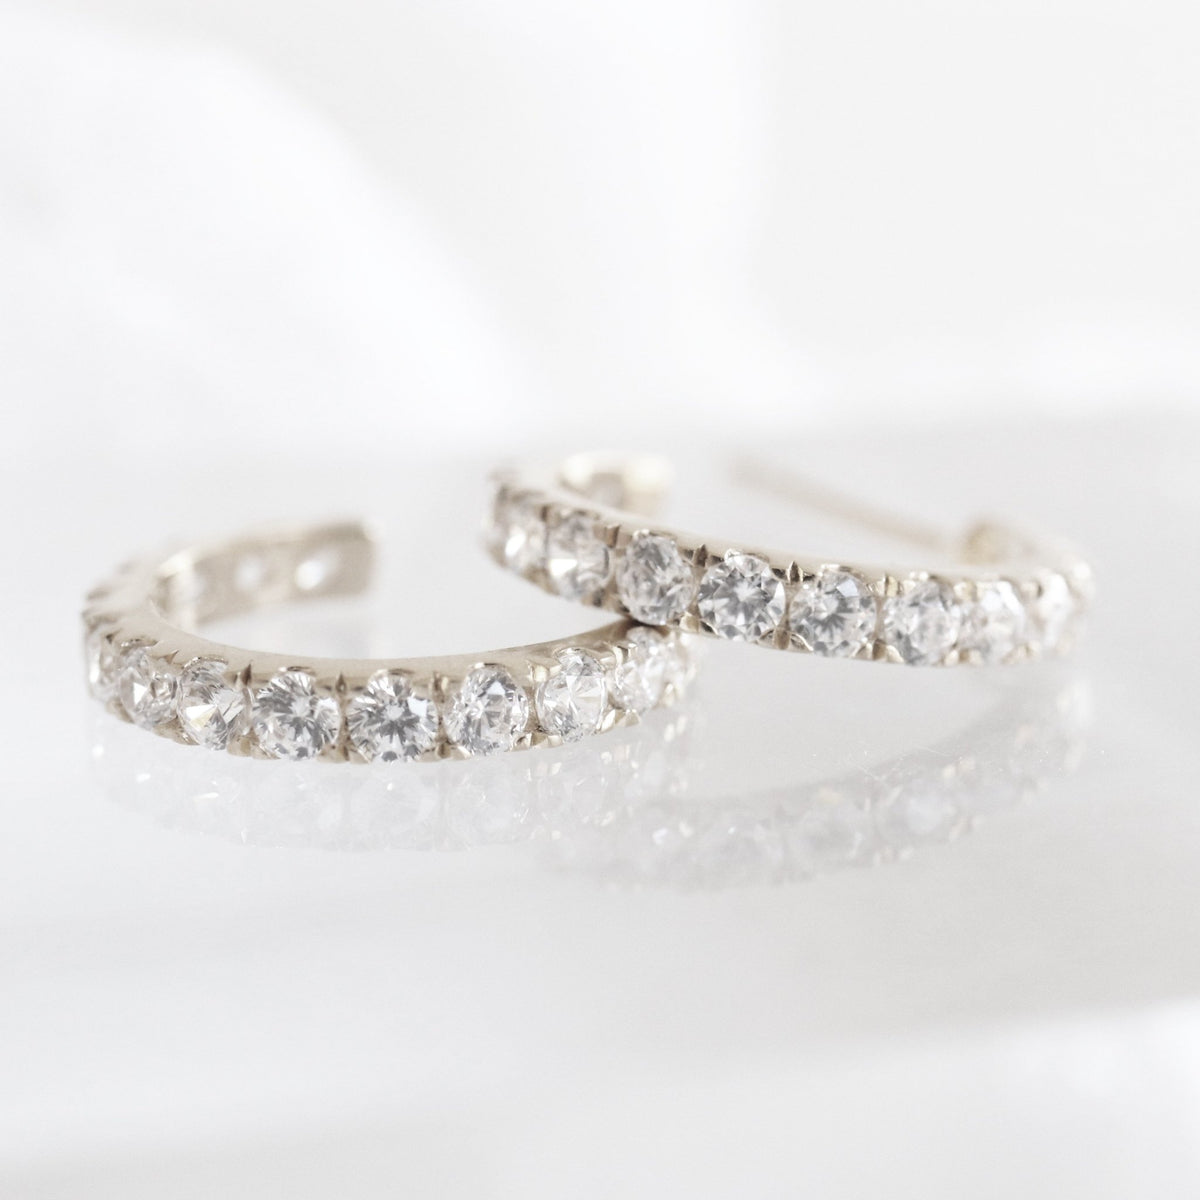 LOVE HUGGIE HOOPS - CUBIC ZIRCONIA & SILVER - SO PRETTY CARA COTTER